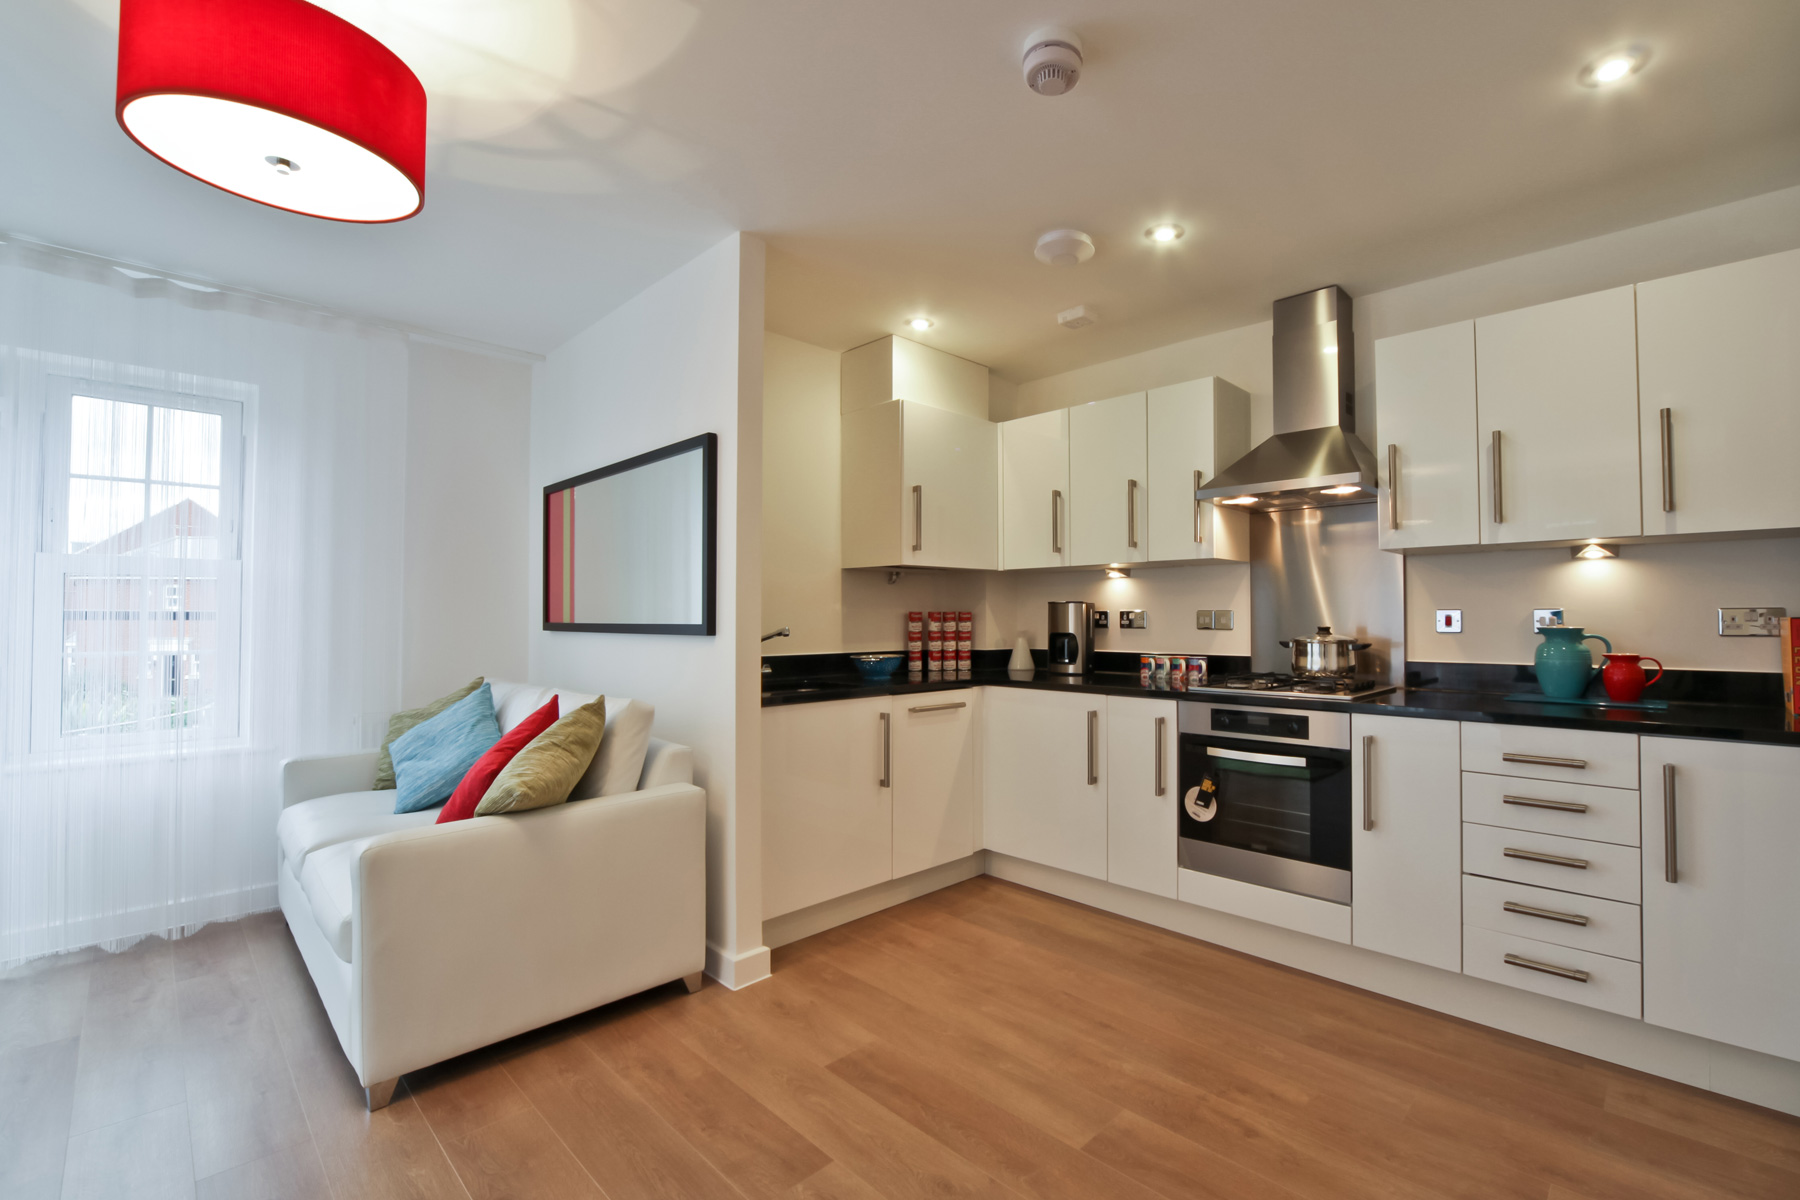 Typical Taylor Wimpey apartment kitchen and sofa.